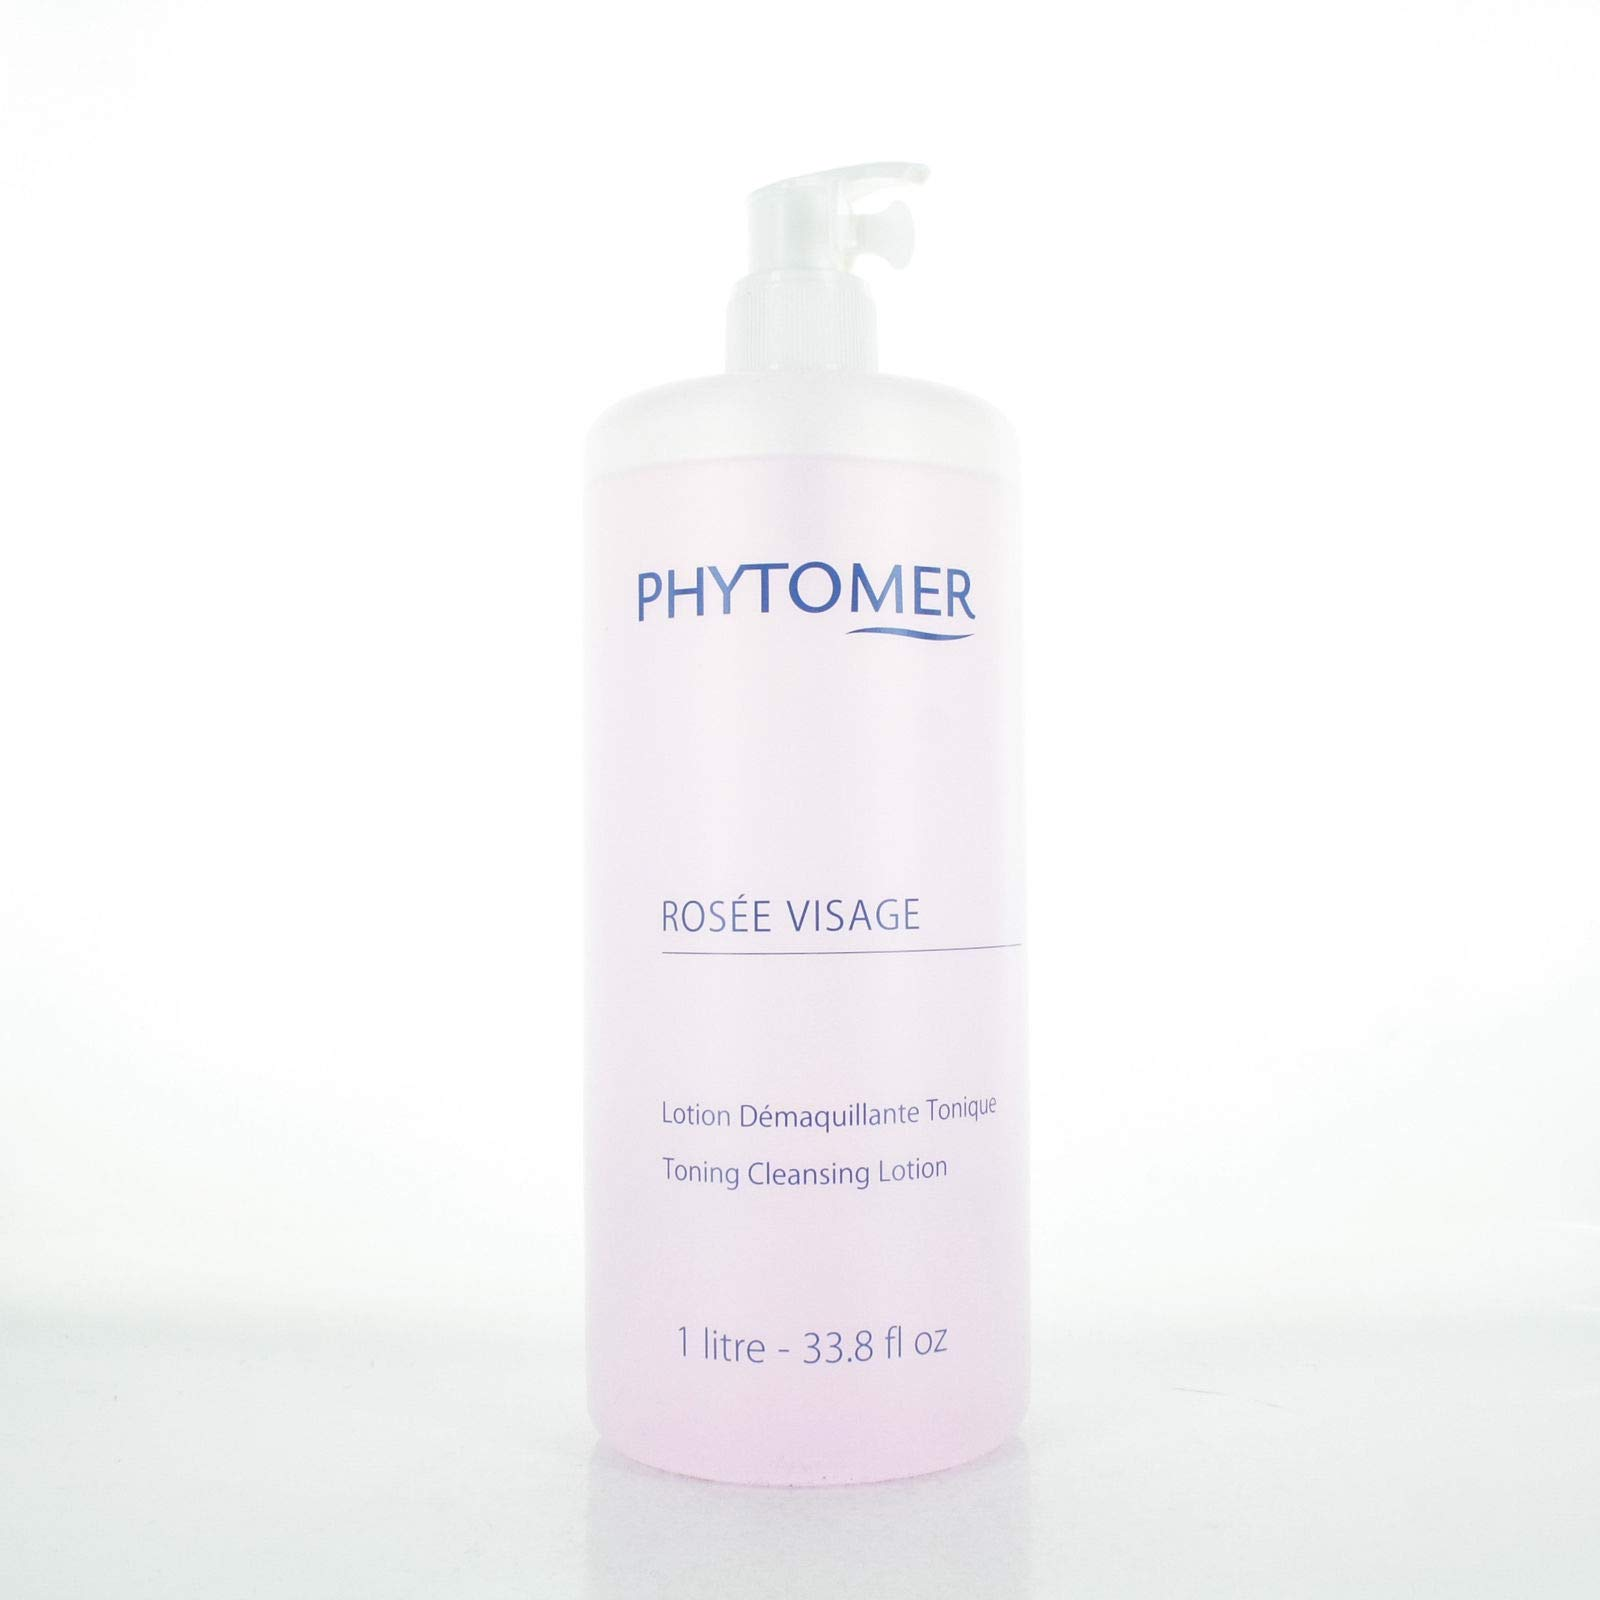 Phytomer ROSEE VISAGE Toning Cleansing Lotion 1 Liter 33.8oz by Phytomer